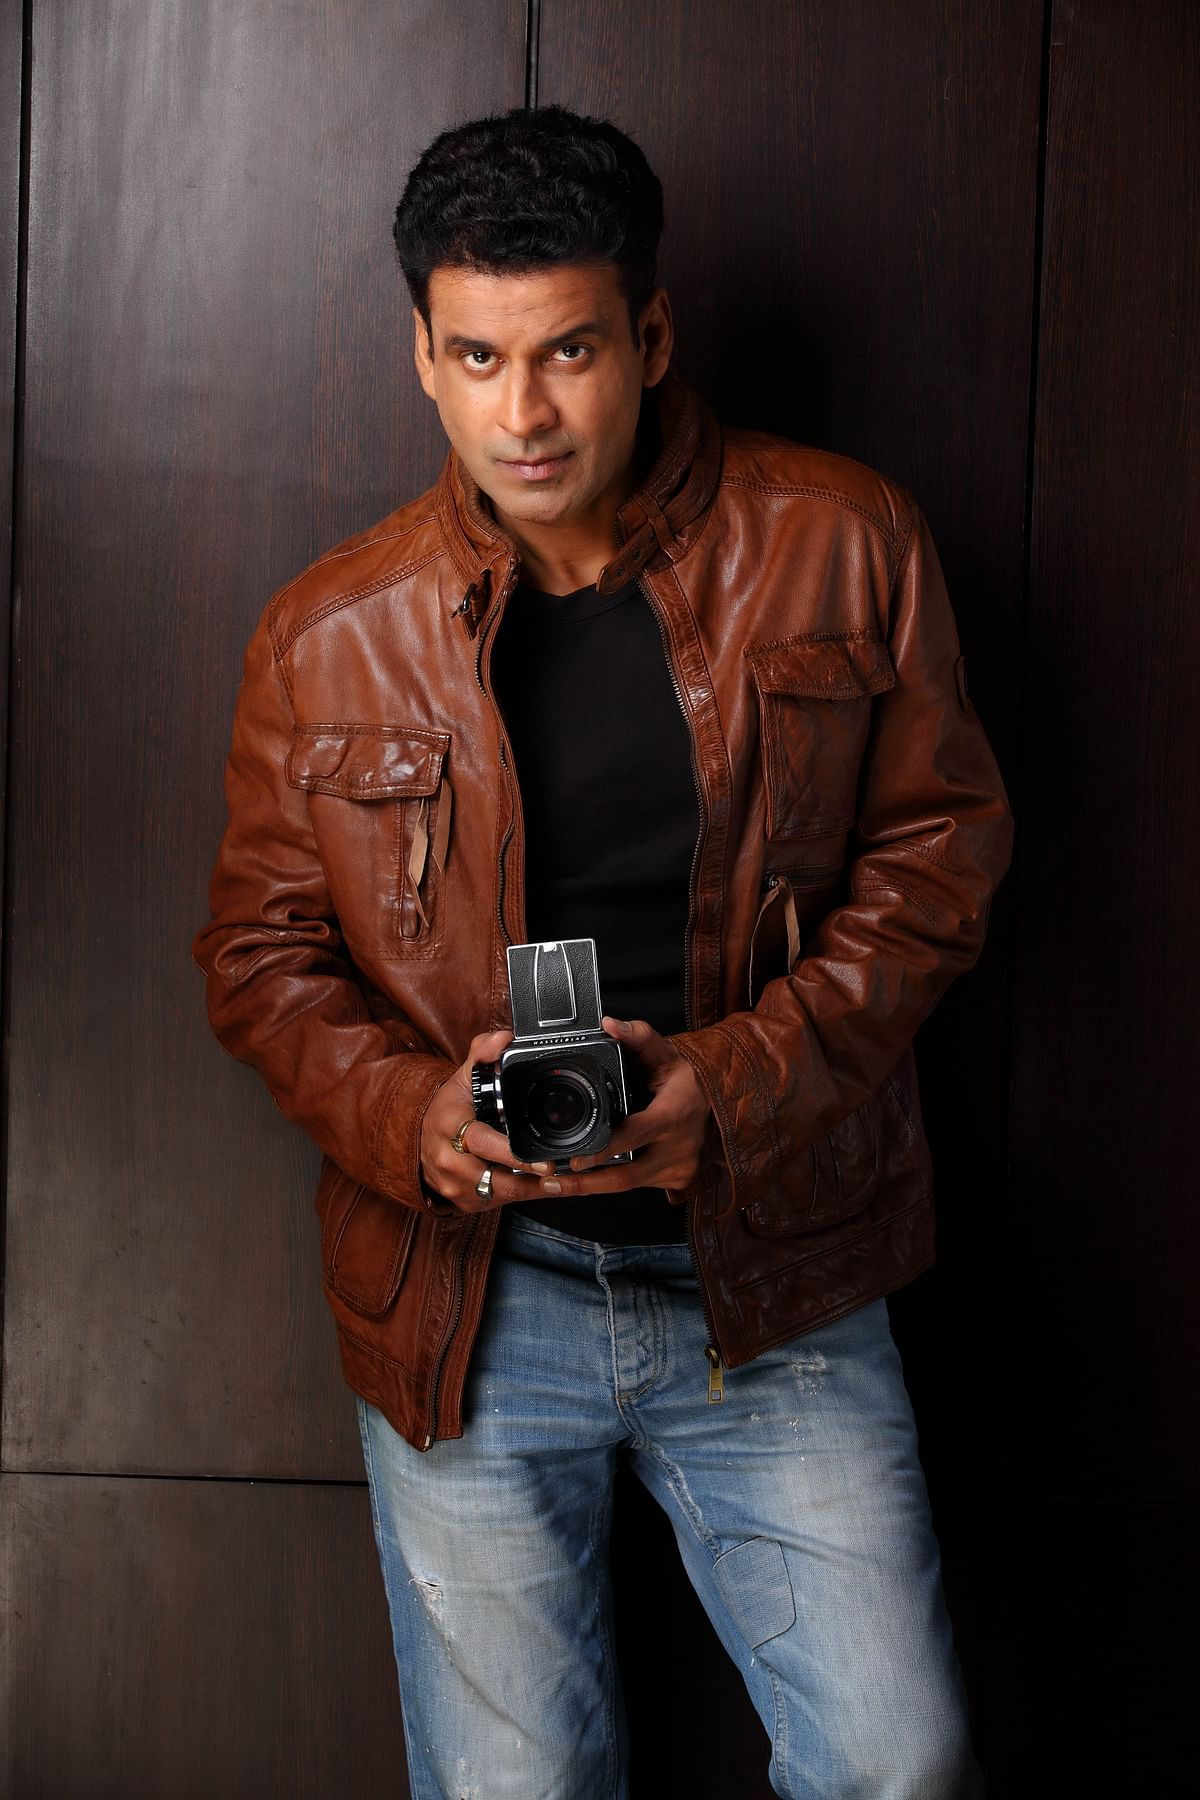 Manoj Bajpayee talks about his love for short films and experimentation. (Photo courtesy: Image Smiths PR Team)